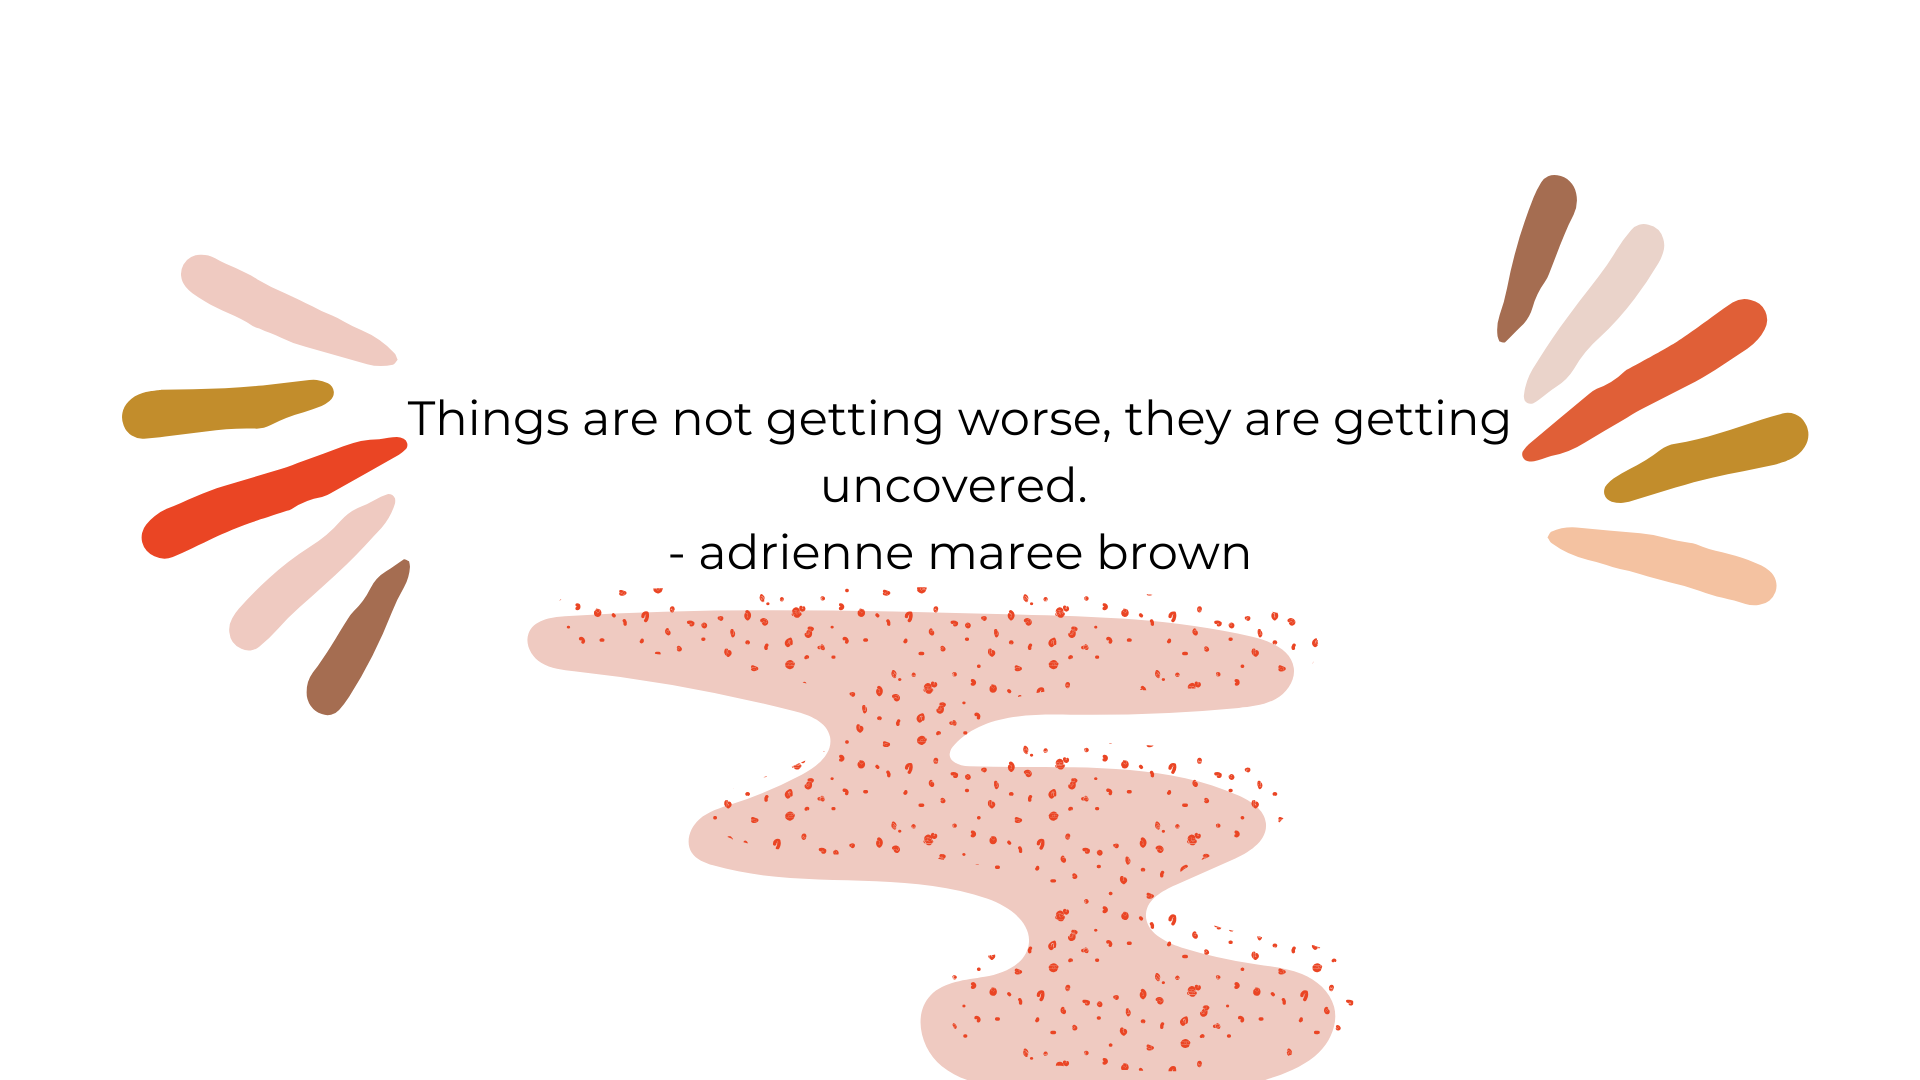 Things are not getting worse, they are getting uncovered.  - adrienne maree brown